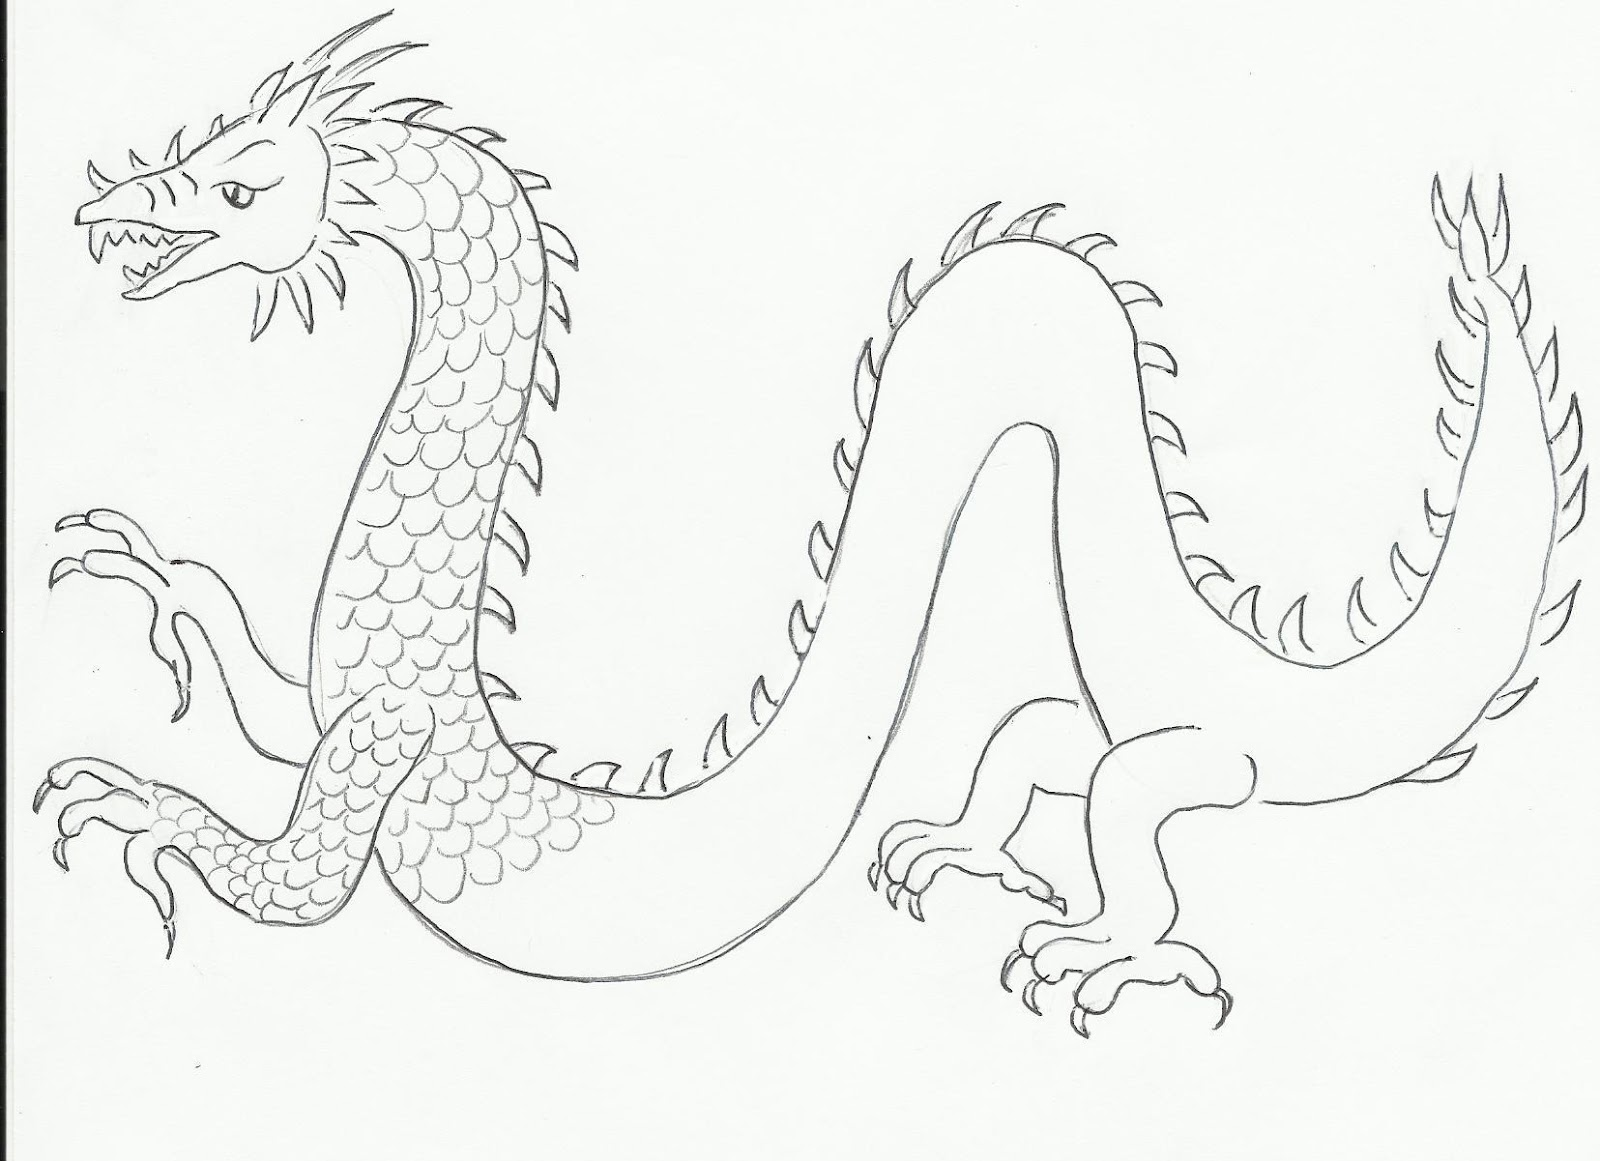 ... kb draw a dragon cached cacheddownload chinese cartoon chinese dragon Easy Chinese Dragon Sketch